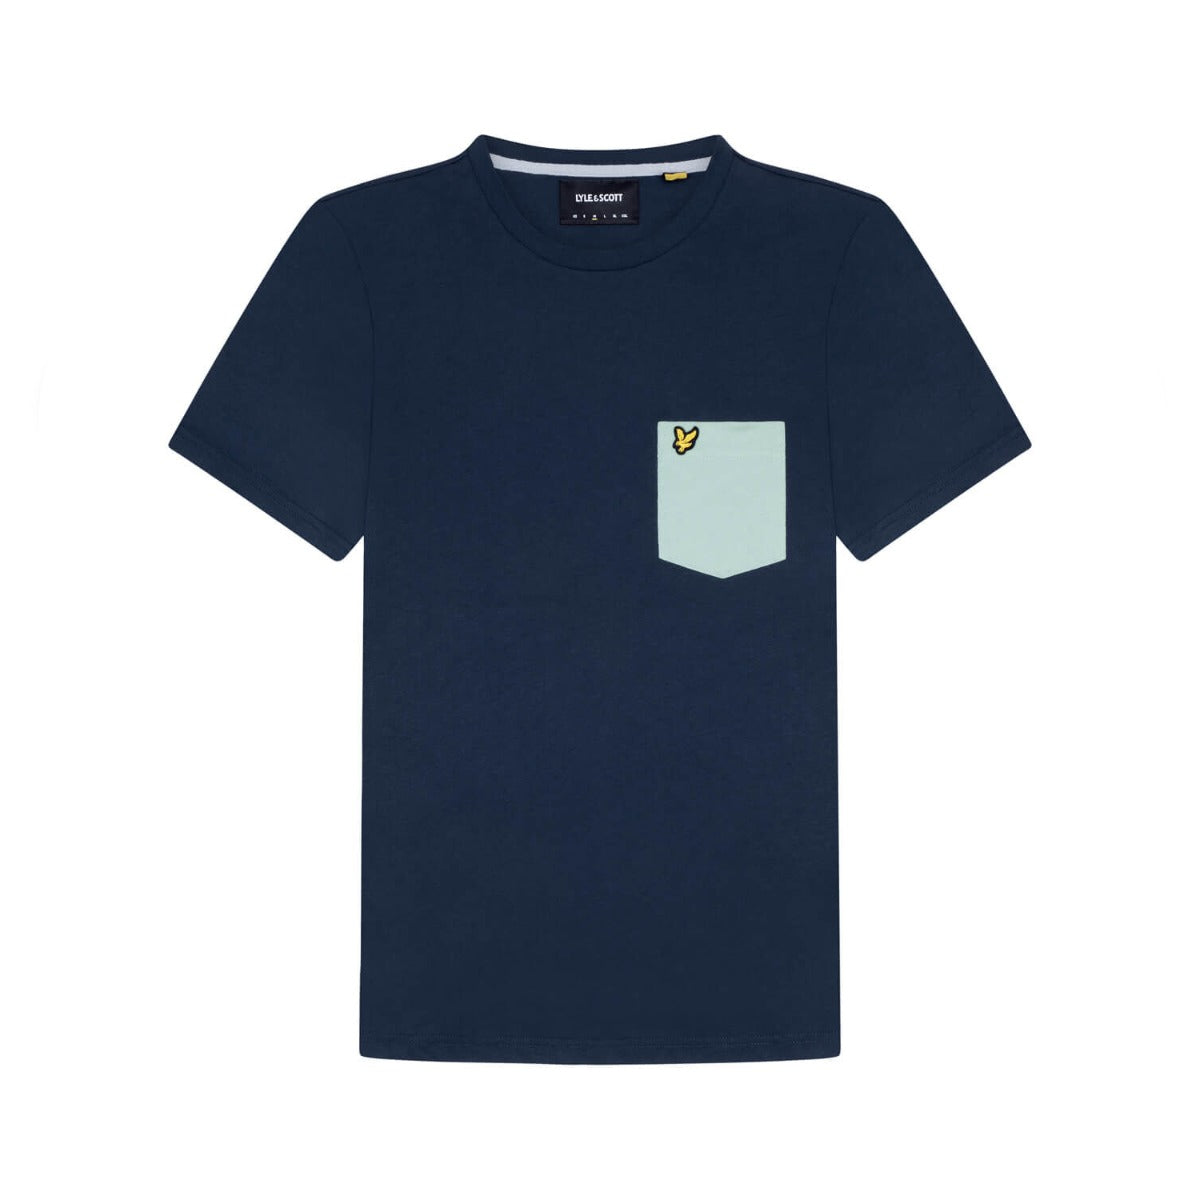 Lyle and Scott Contrast Pocket T-shirt - Navy/Grey Fog